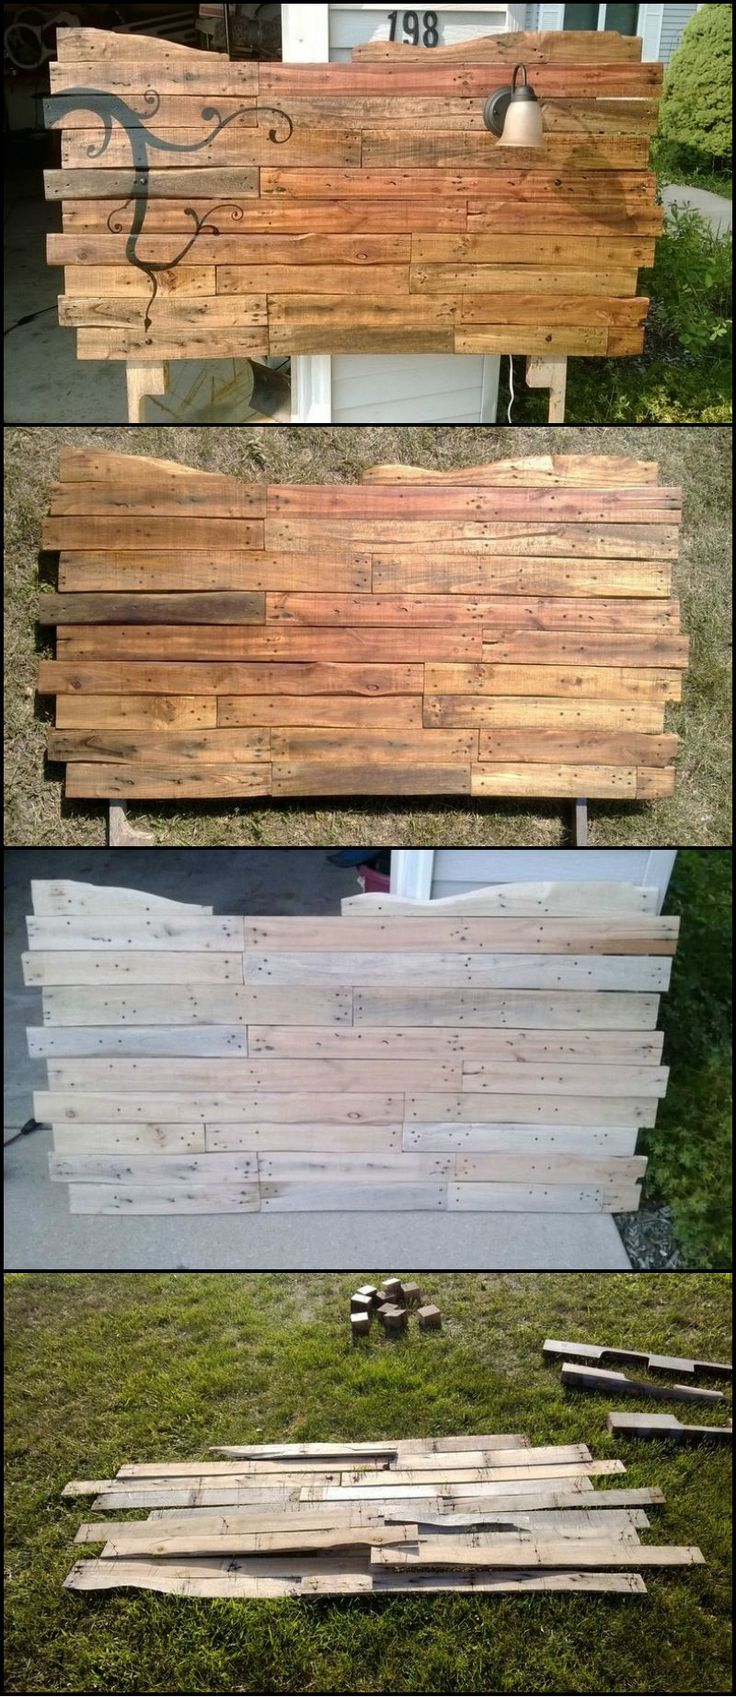 How To Build A Headboard From Recycled Pallets  http://theownerbuildernetwork.co/1x2d  Here's another great creation made from recycled pallets. Also another proof that one doesn't have to be a professional to create something impressive for the home!